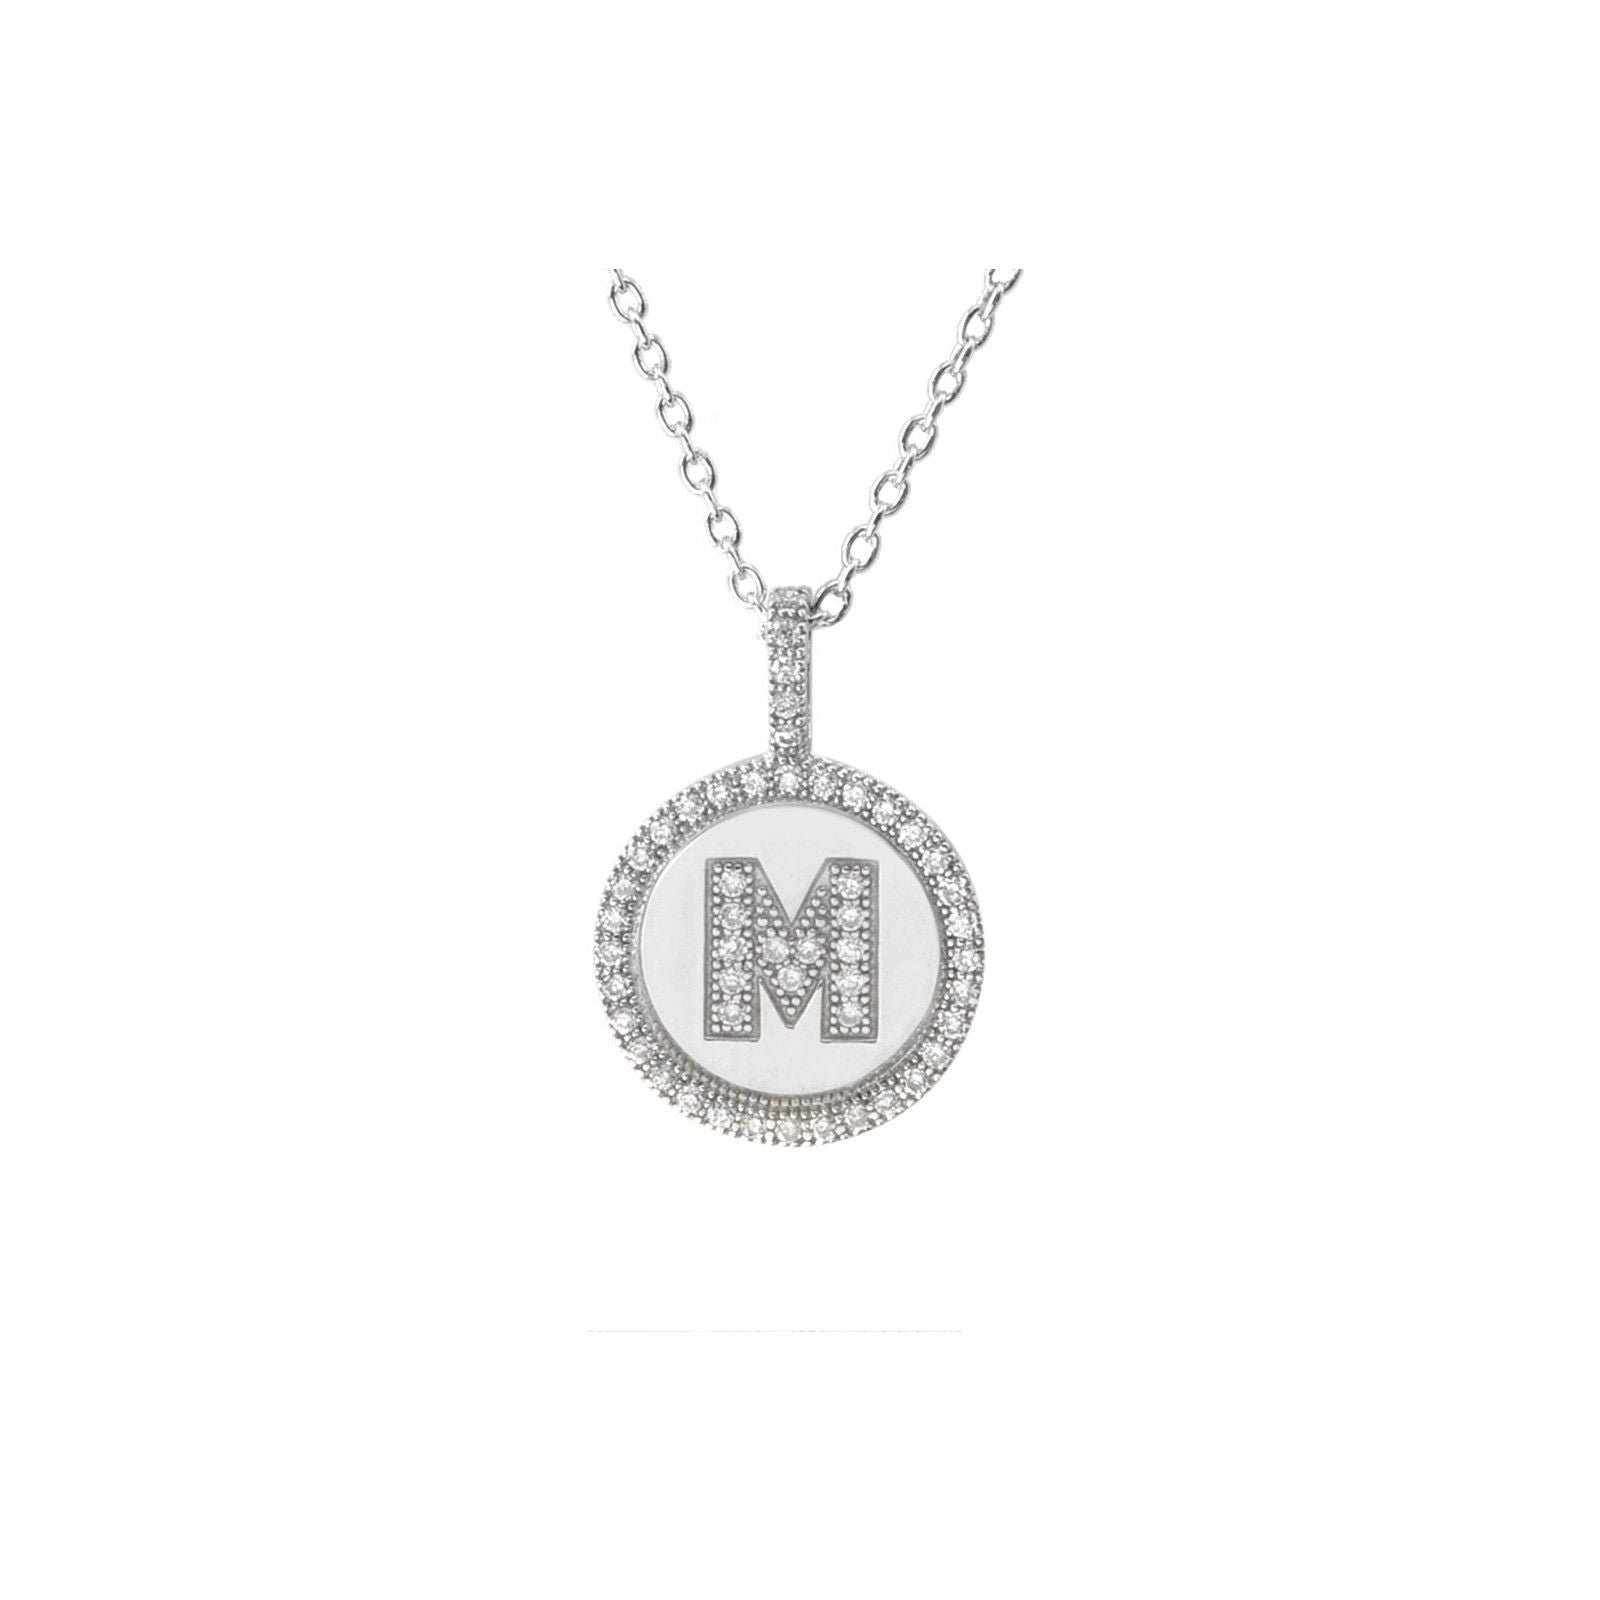 Initial necklace sterling silver letter g pendant cubic zirconia 16 sterling silver letter m initial pendant necklace cz cubic zirconia micropave mozeypictures Image collections